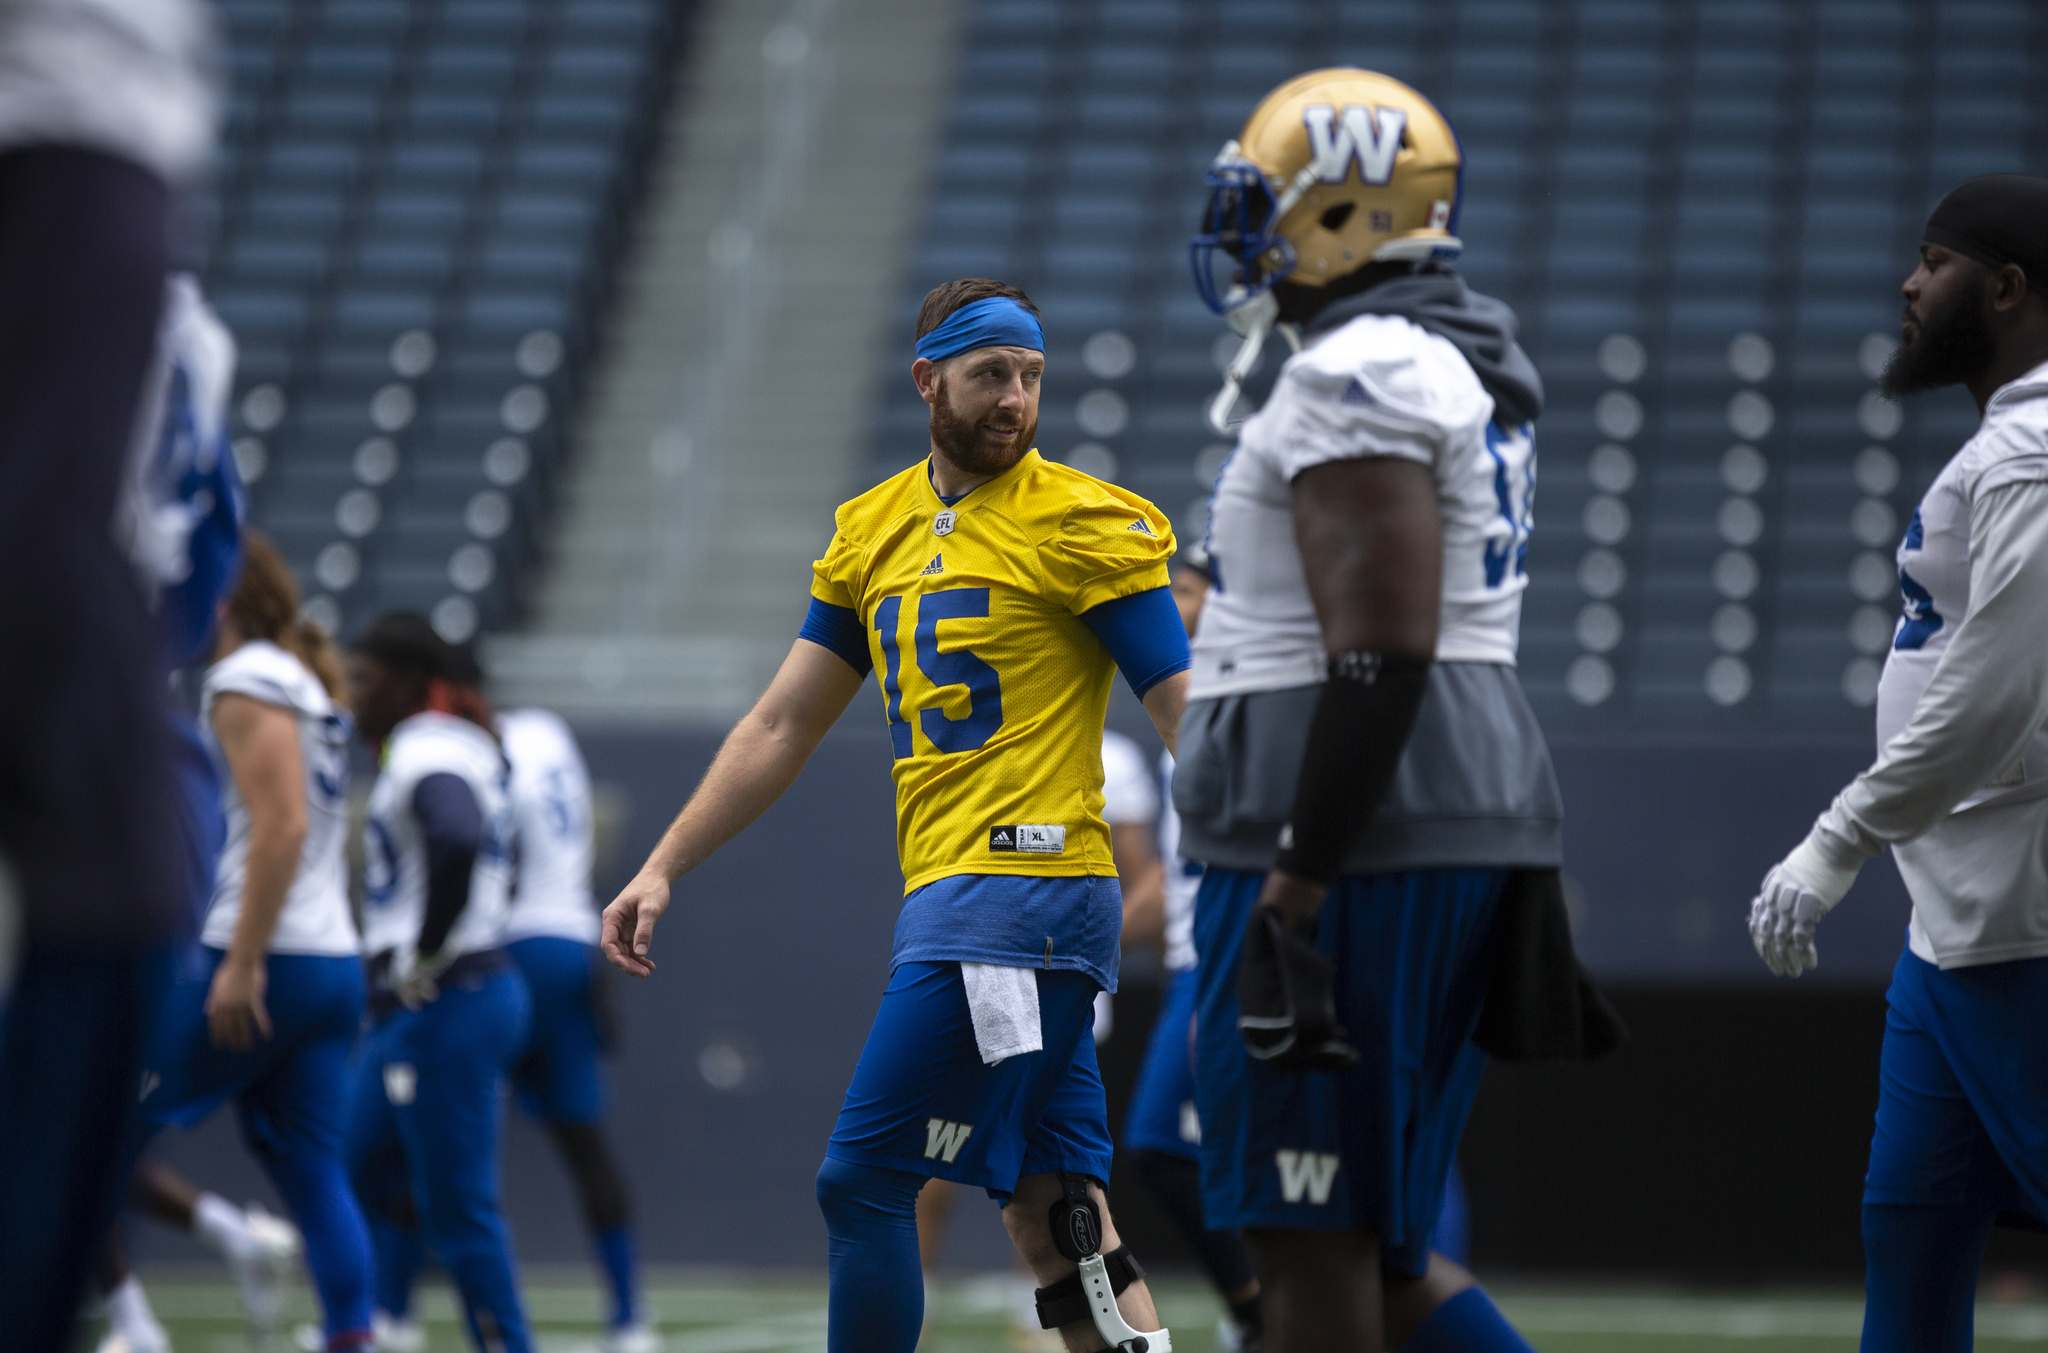 ANDREW RYAN / WINNIPEG FREE PRESS</p><p>Bombers quarterback Matt Nichols (15) in practice action at Investors Group Field on August 13, 2018.</p>